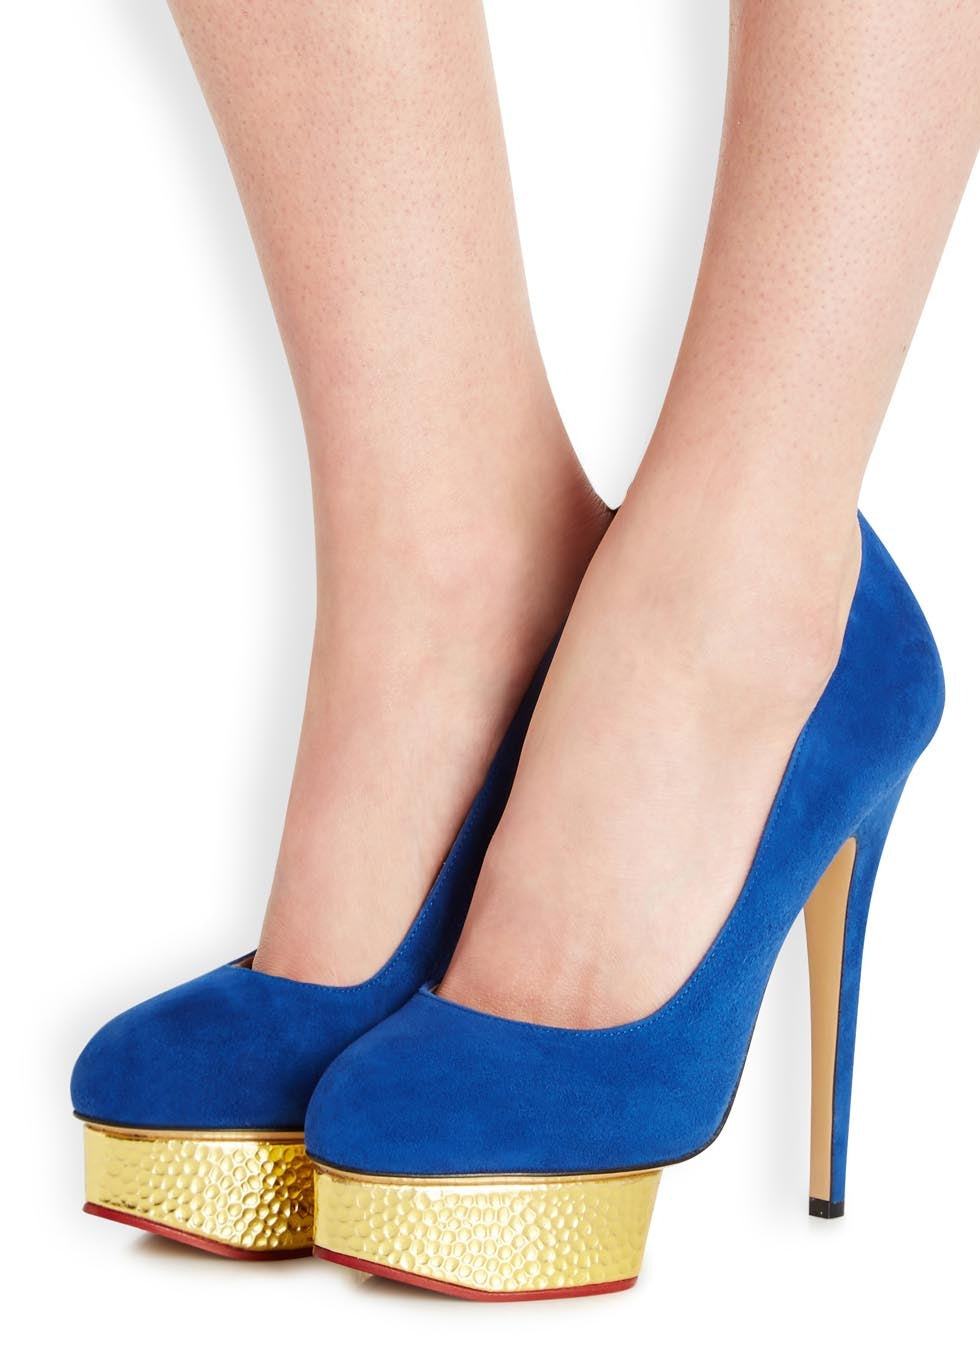 Charlotte Olympia Blue Suede Dolly Platform Pump Heels - 38